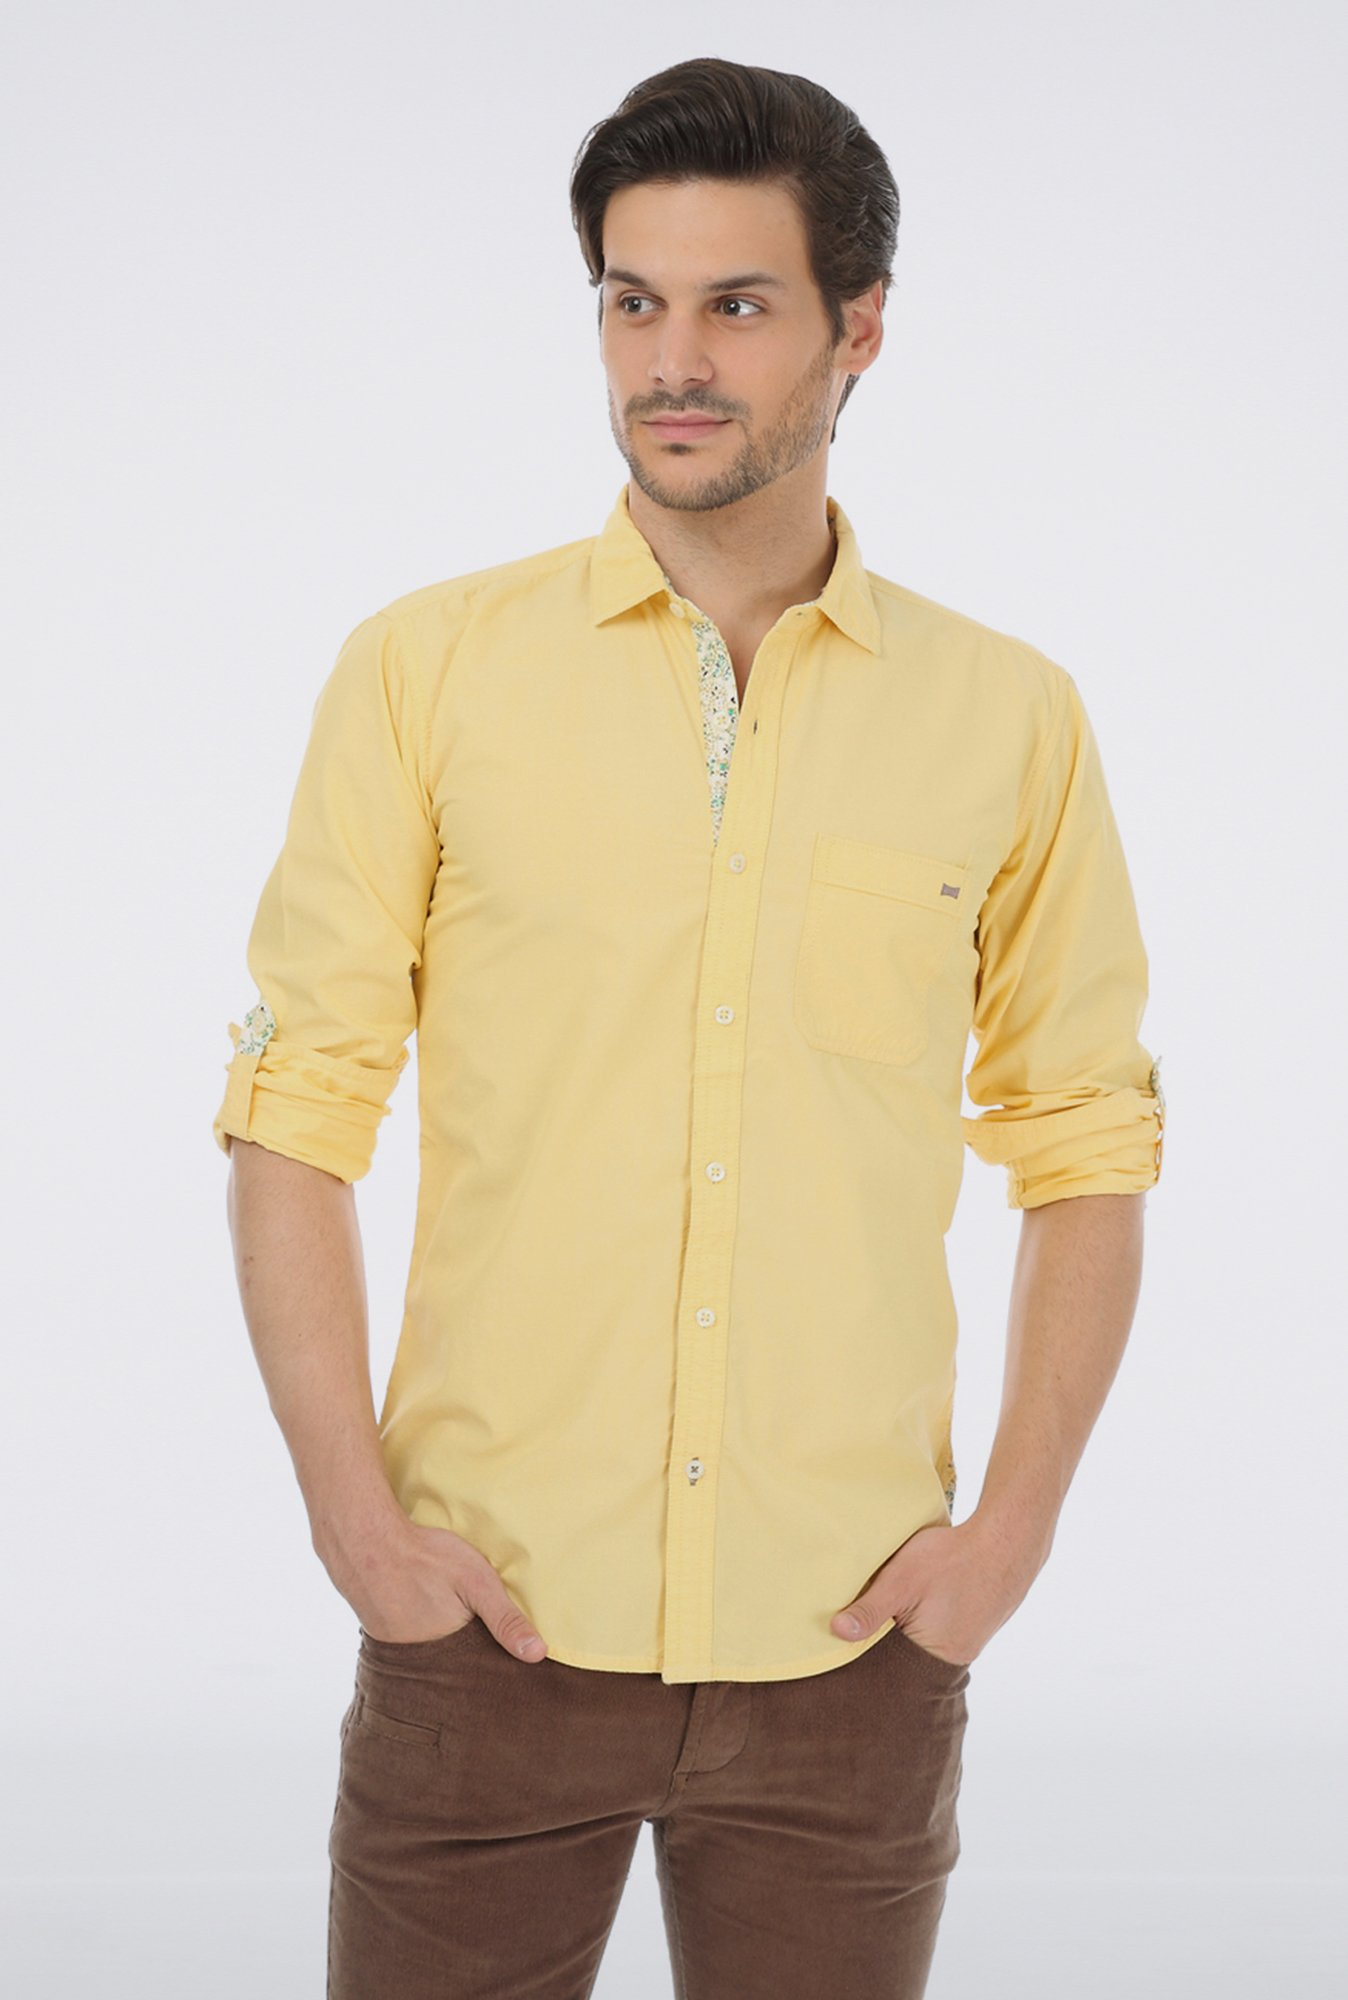 Basics Yellow Cotton Casual Shirt